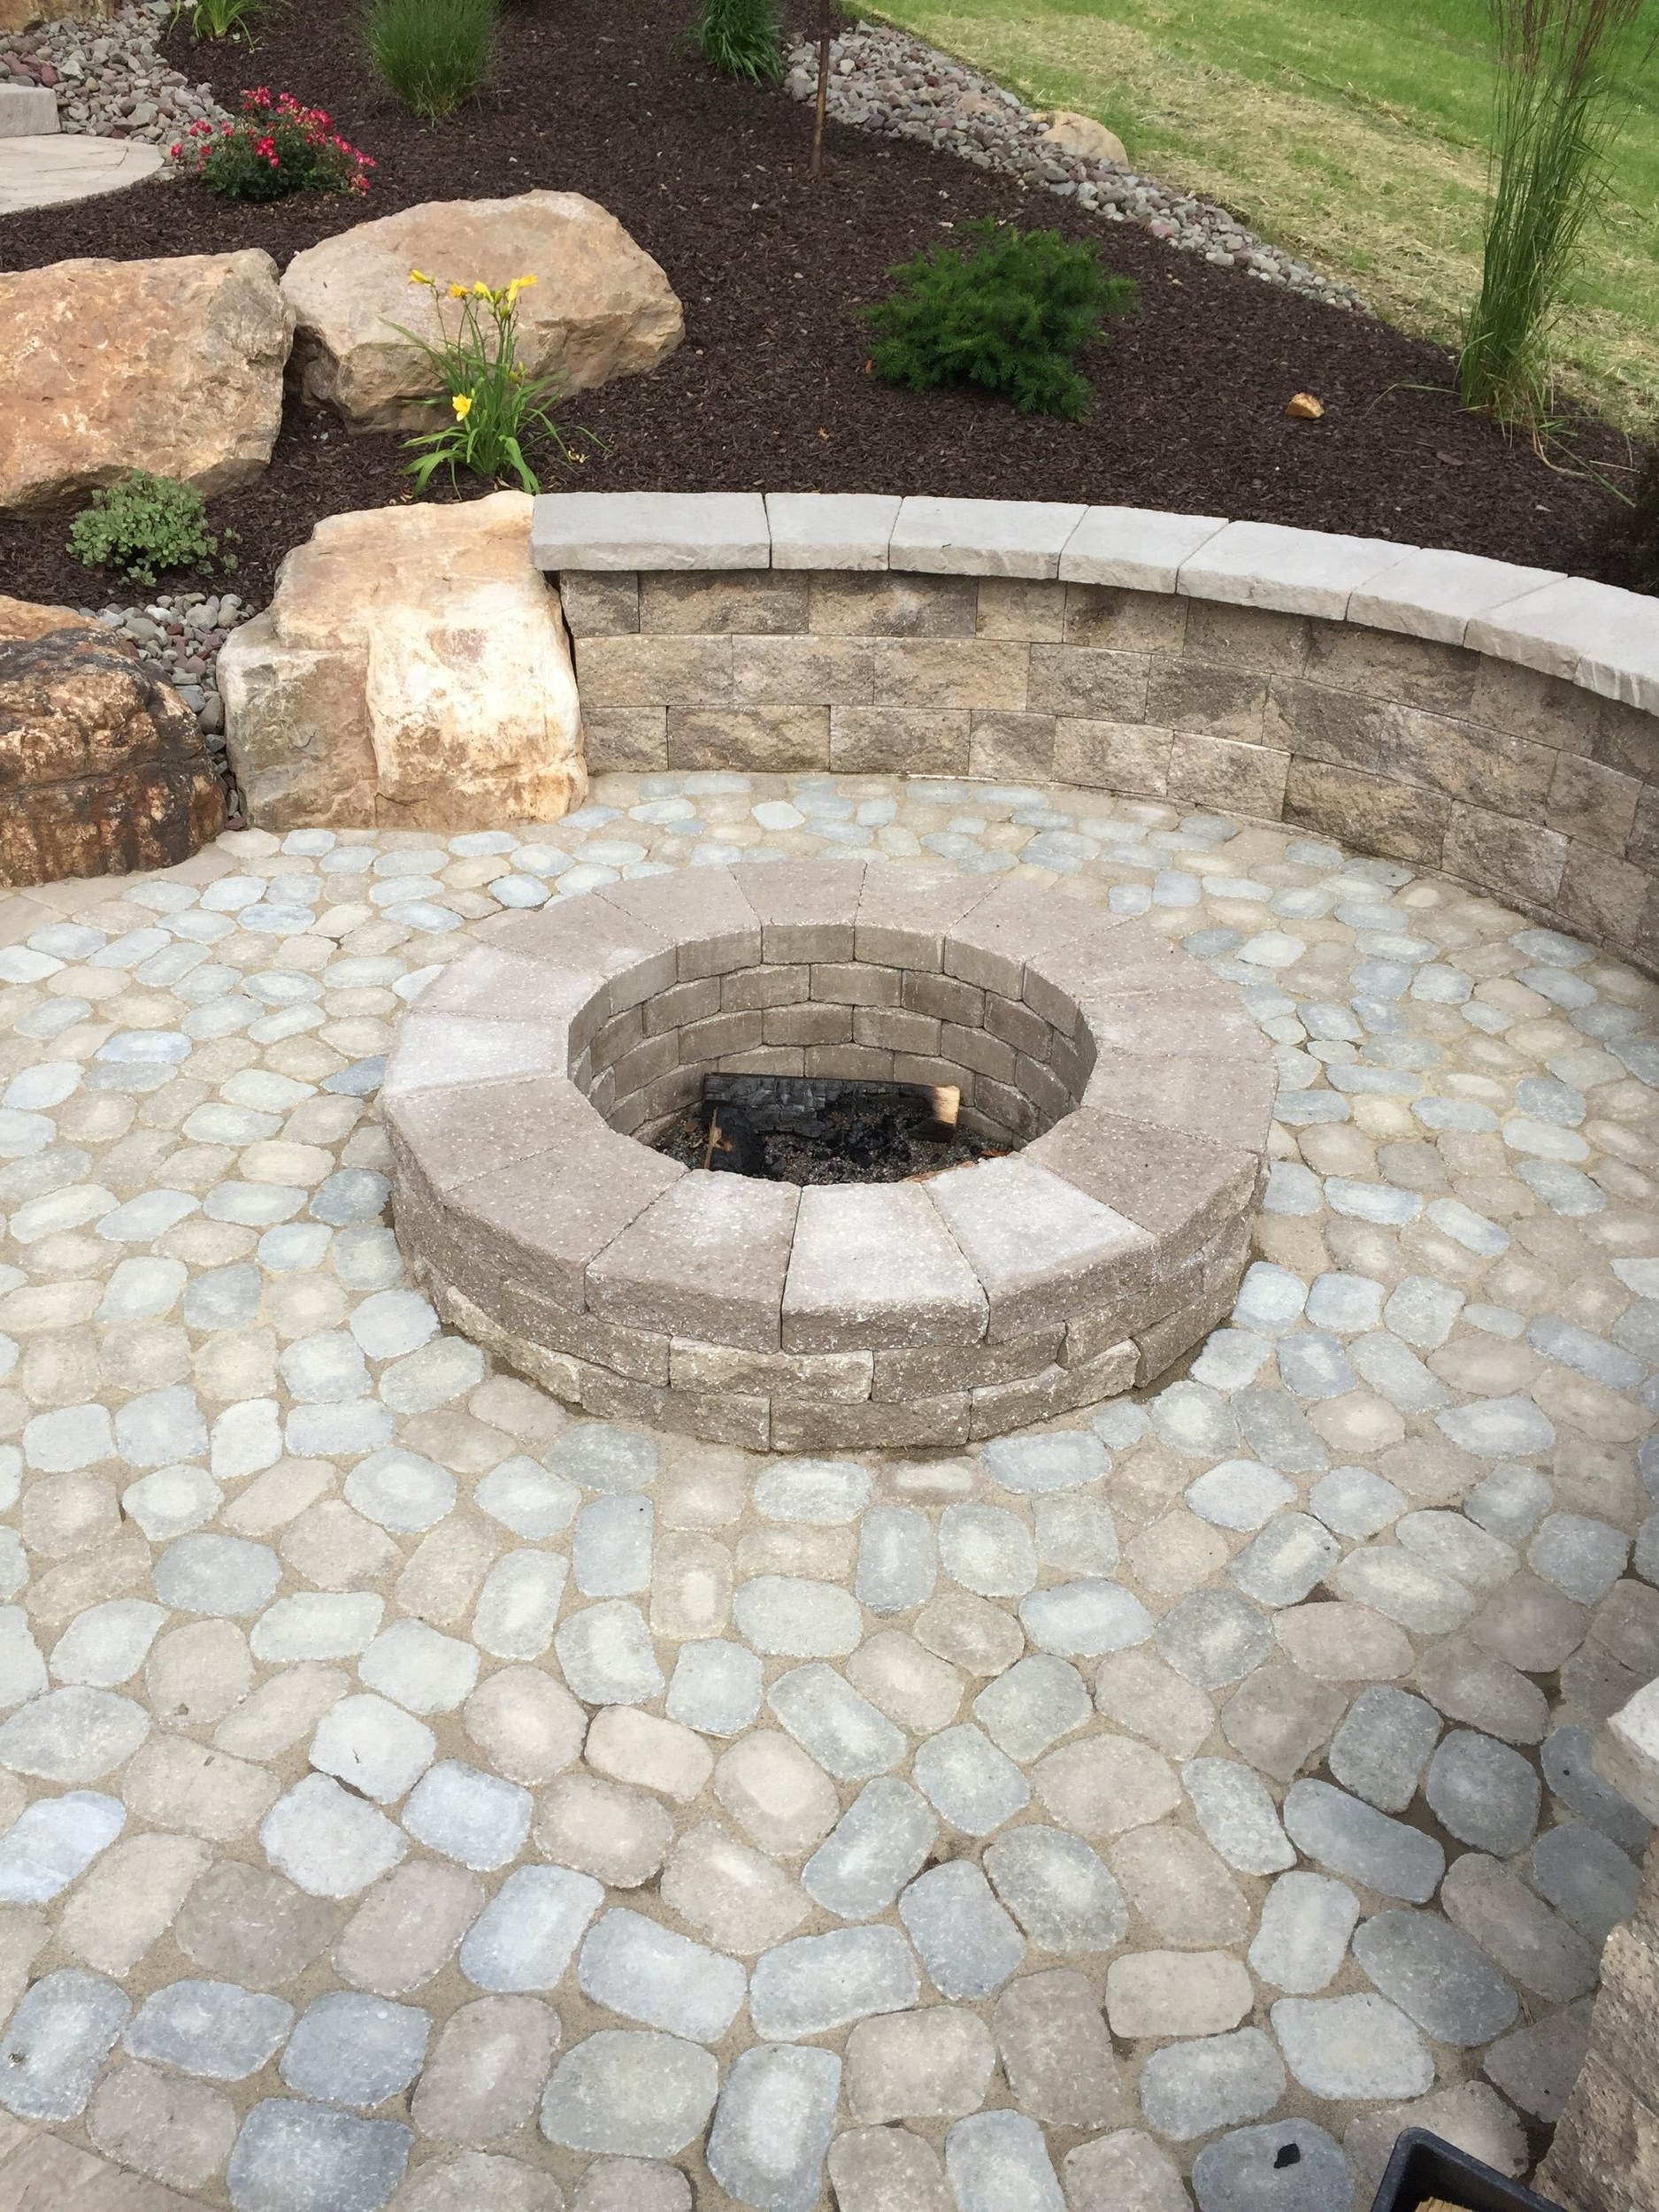 Landscape design ideas with an outdoor fireplace in Lebanon, PA